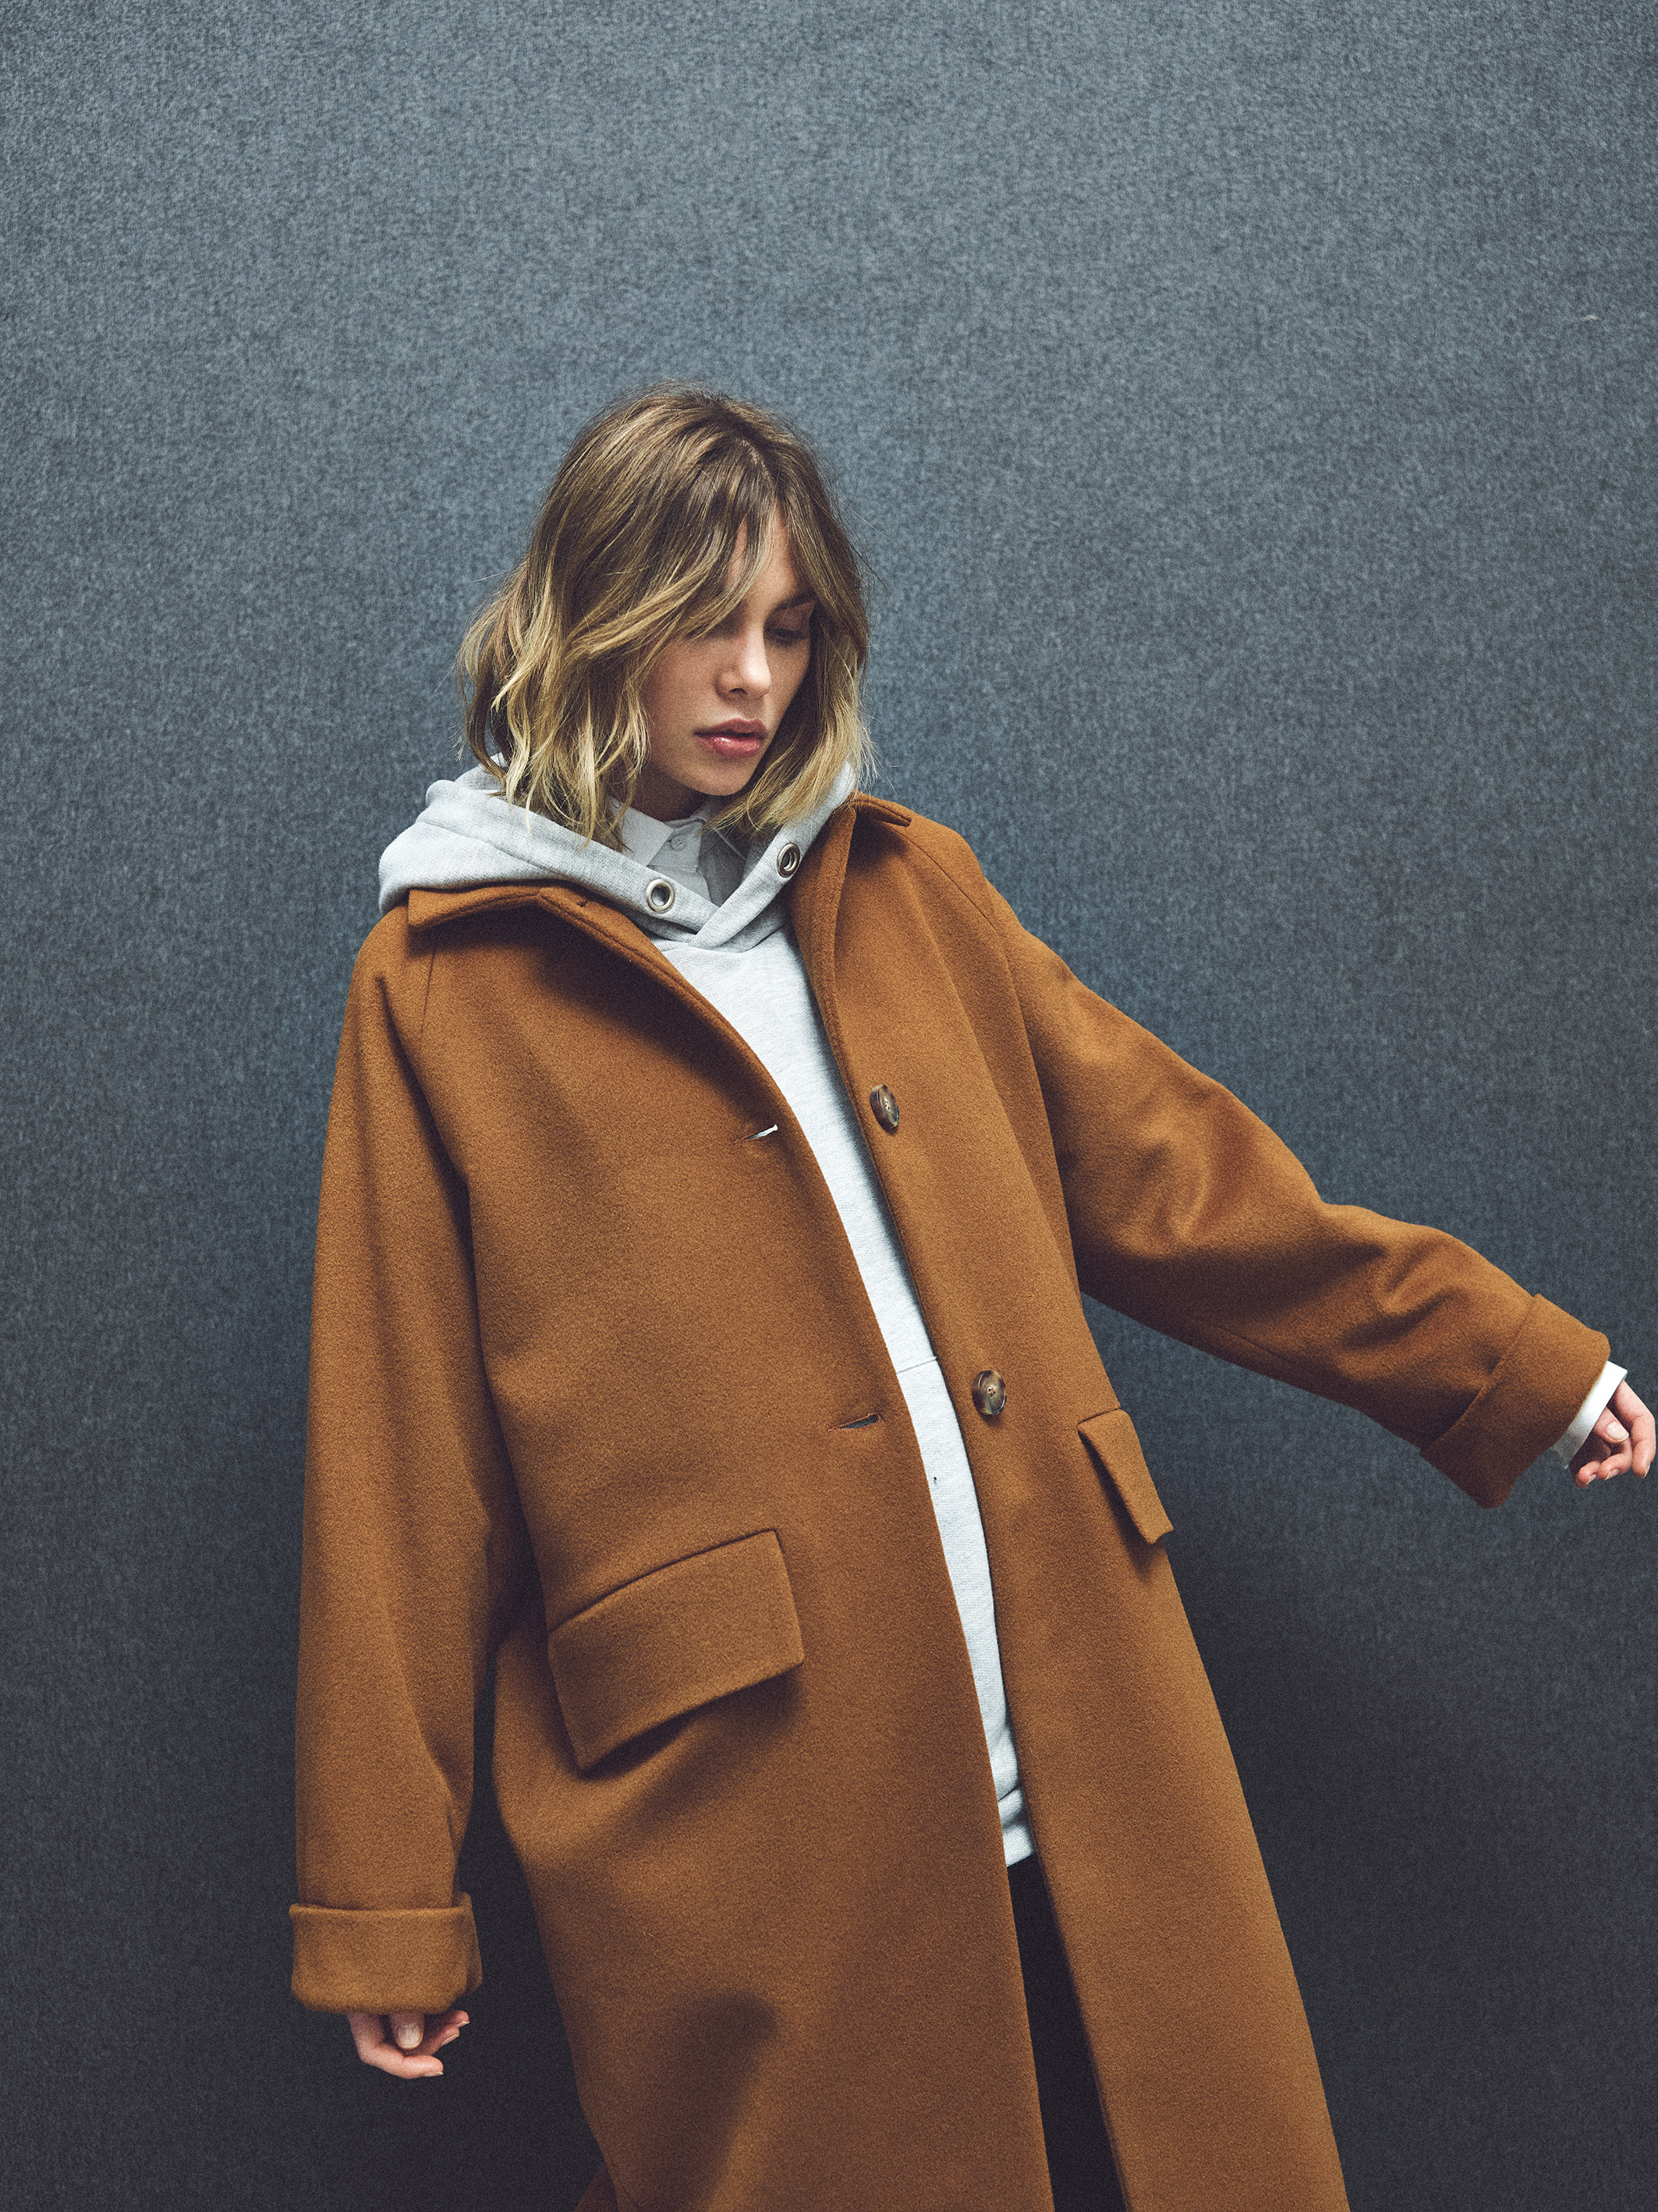 """MARGAUX LONNBERG  Often times a designer and their creations can make a woman feel both powerful and comfortable. And that sensation can be as much about the juxtaposition of materials as it is the contrast of color. For instance, an oversized cotton hoodie in light grey strikes a good natured contrast with a wool overcoat in burnt sienna. Works flawlessly in the modern marketplace -- it's very of the moment,yet with an elegant style. I've always thought that a strong coat or blazer paired with comfortable sweats gives off that subtle wink of a """"boyfriend's borrow"""" under a layer of pure self-knowledge and femininity. That's a seductive combination."""